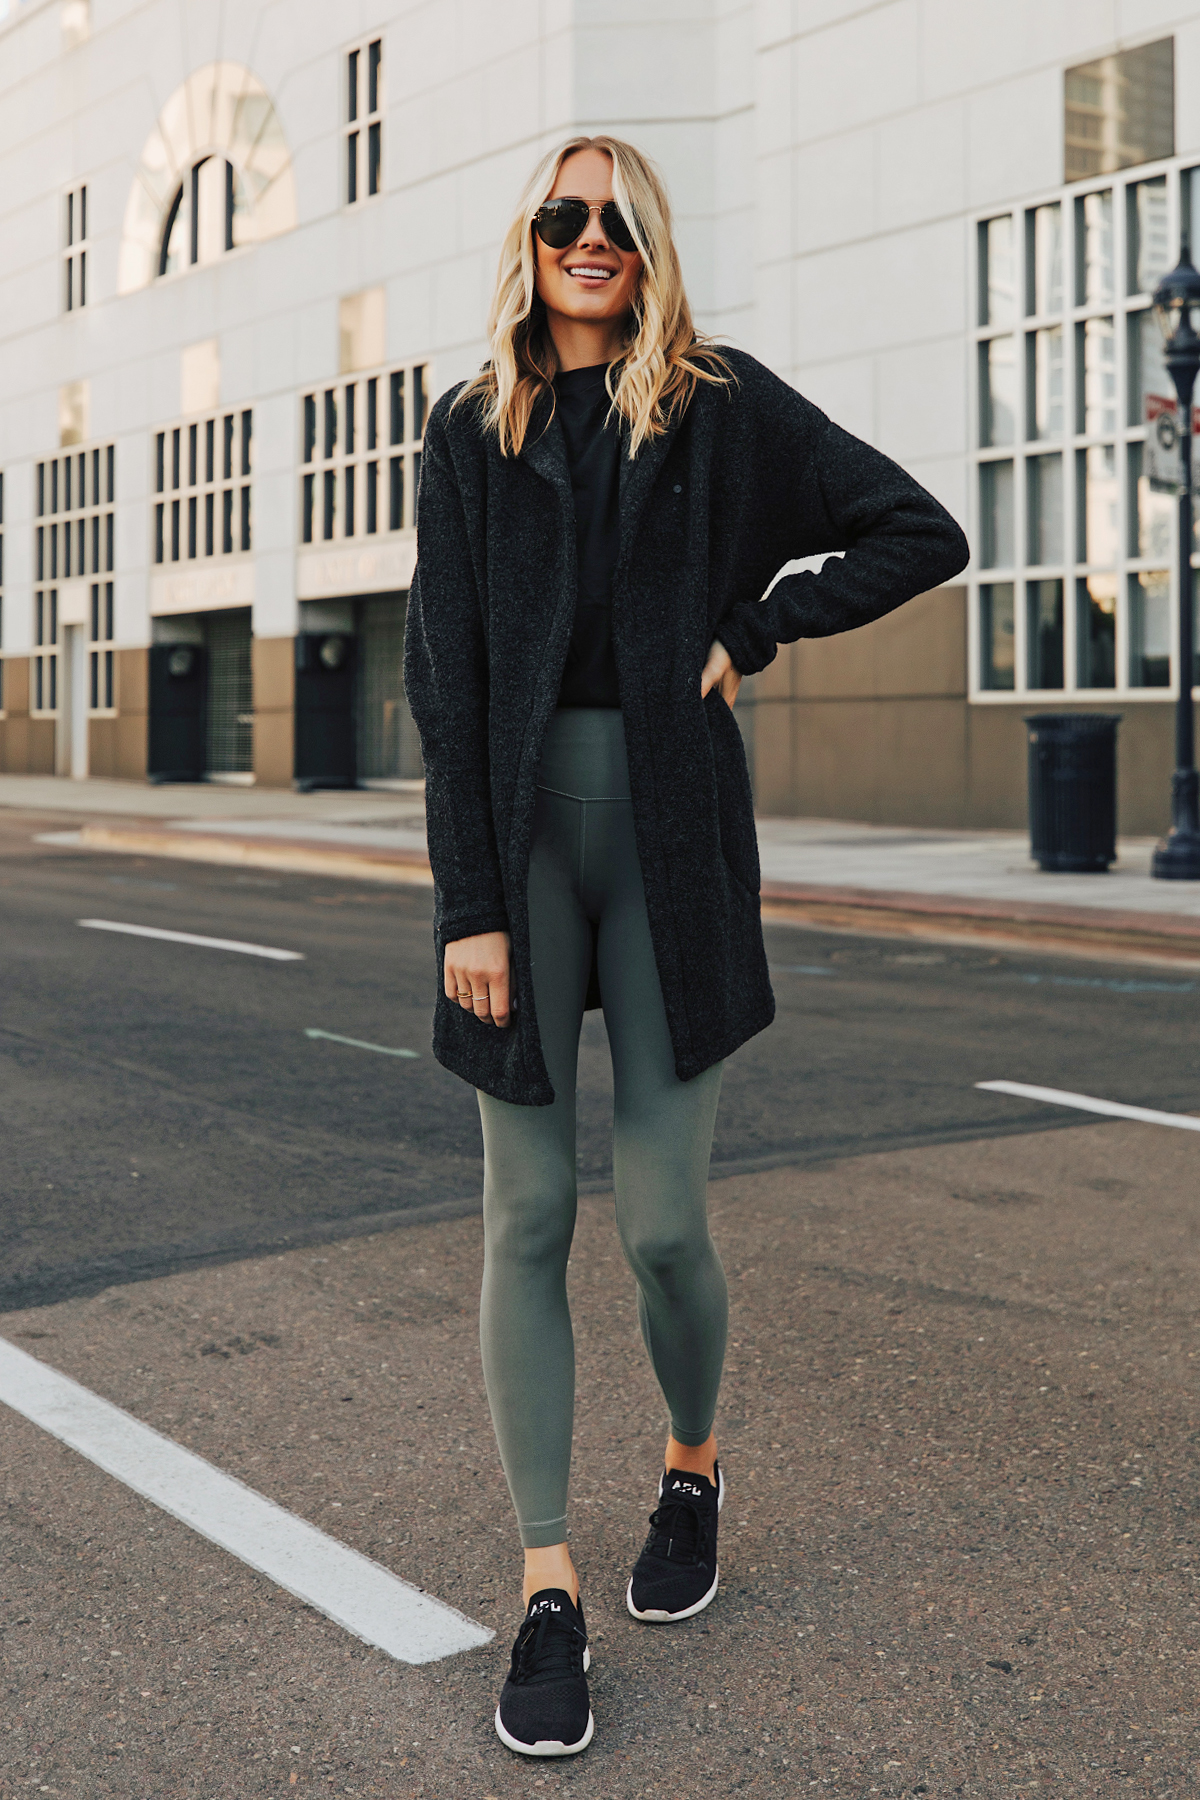 Fashion Jackson Wearing lululemon Sherpa Wrap Jacket lululemon Align Leggings Black APL Sneakers 1